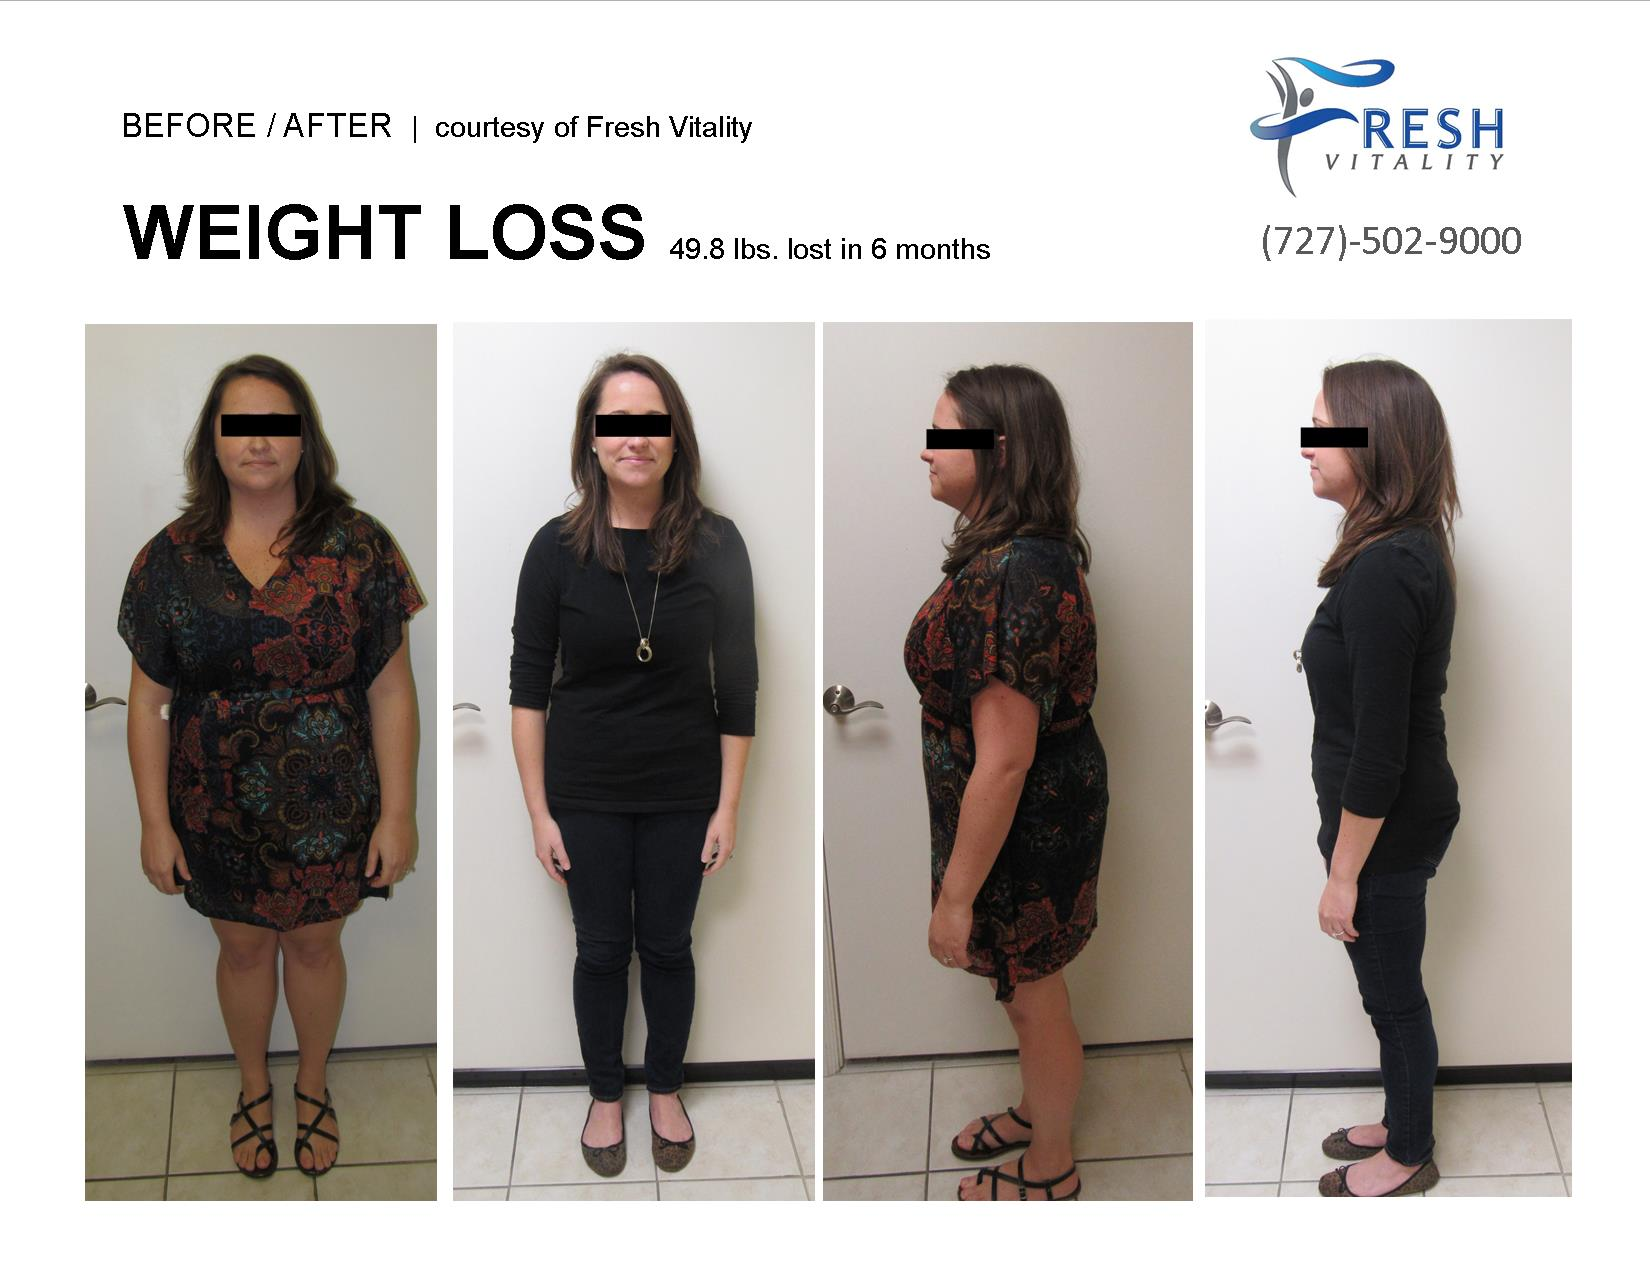 Medical Weight Loss St Petersburg Before After 49.8 pounds